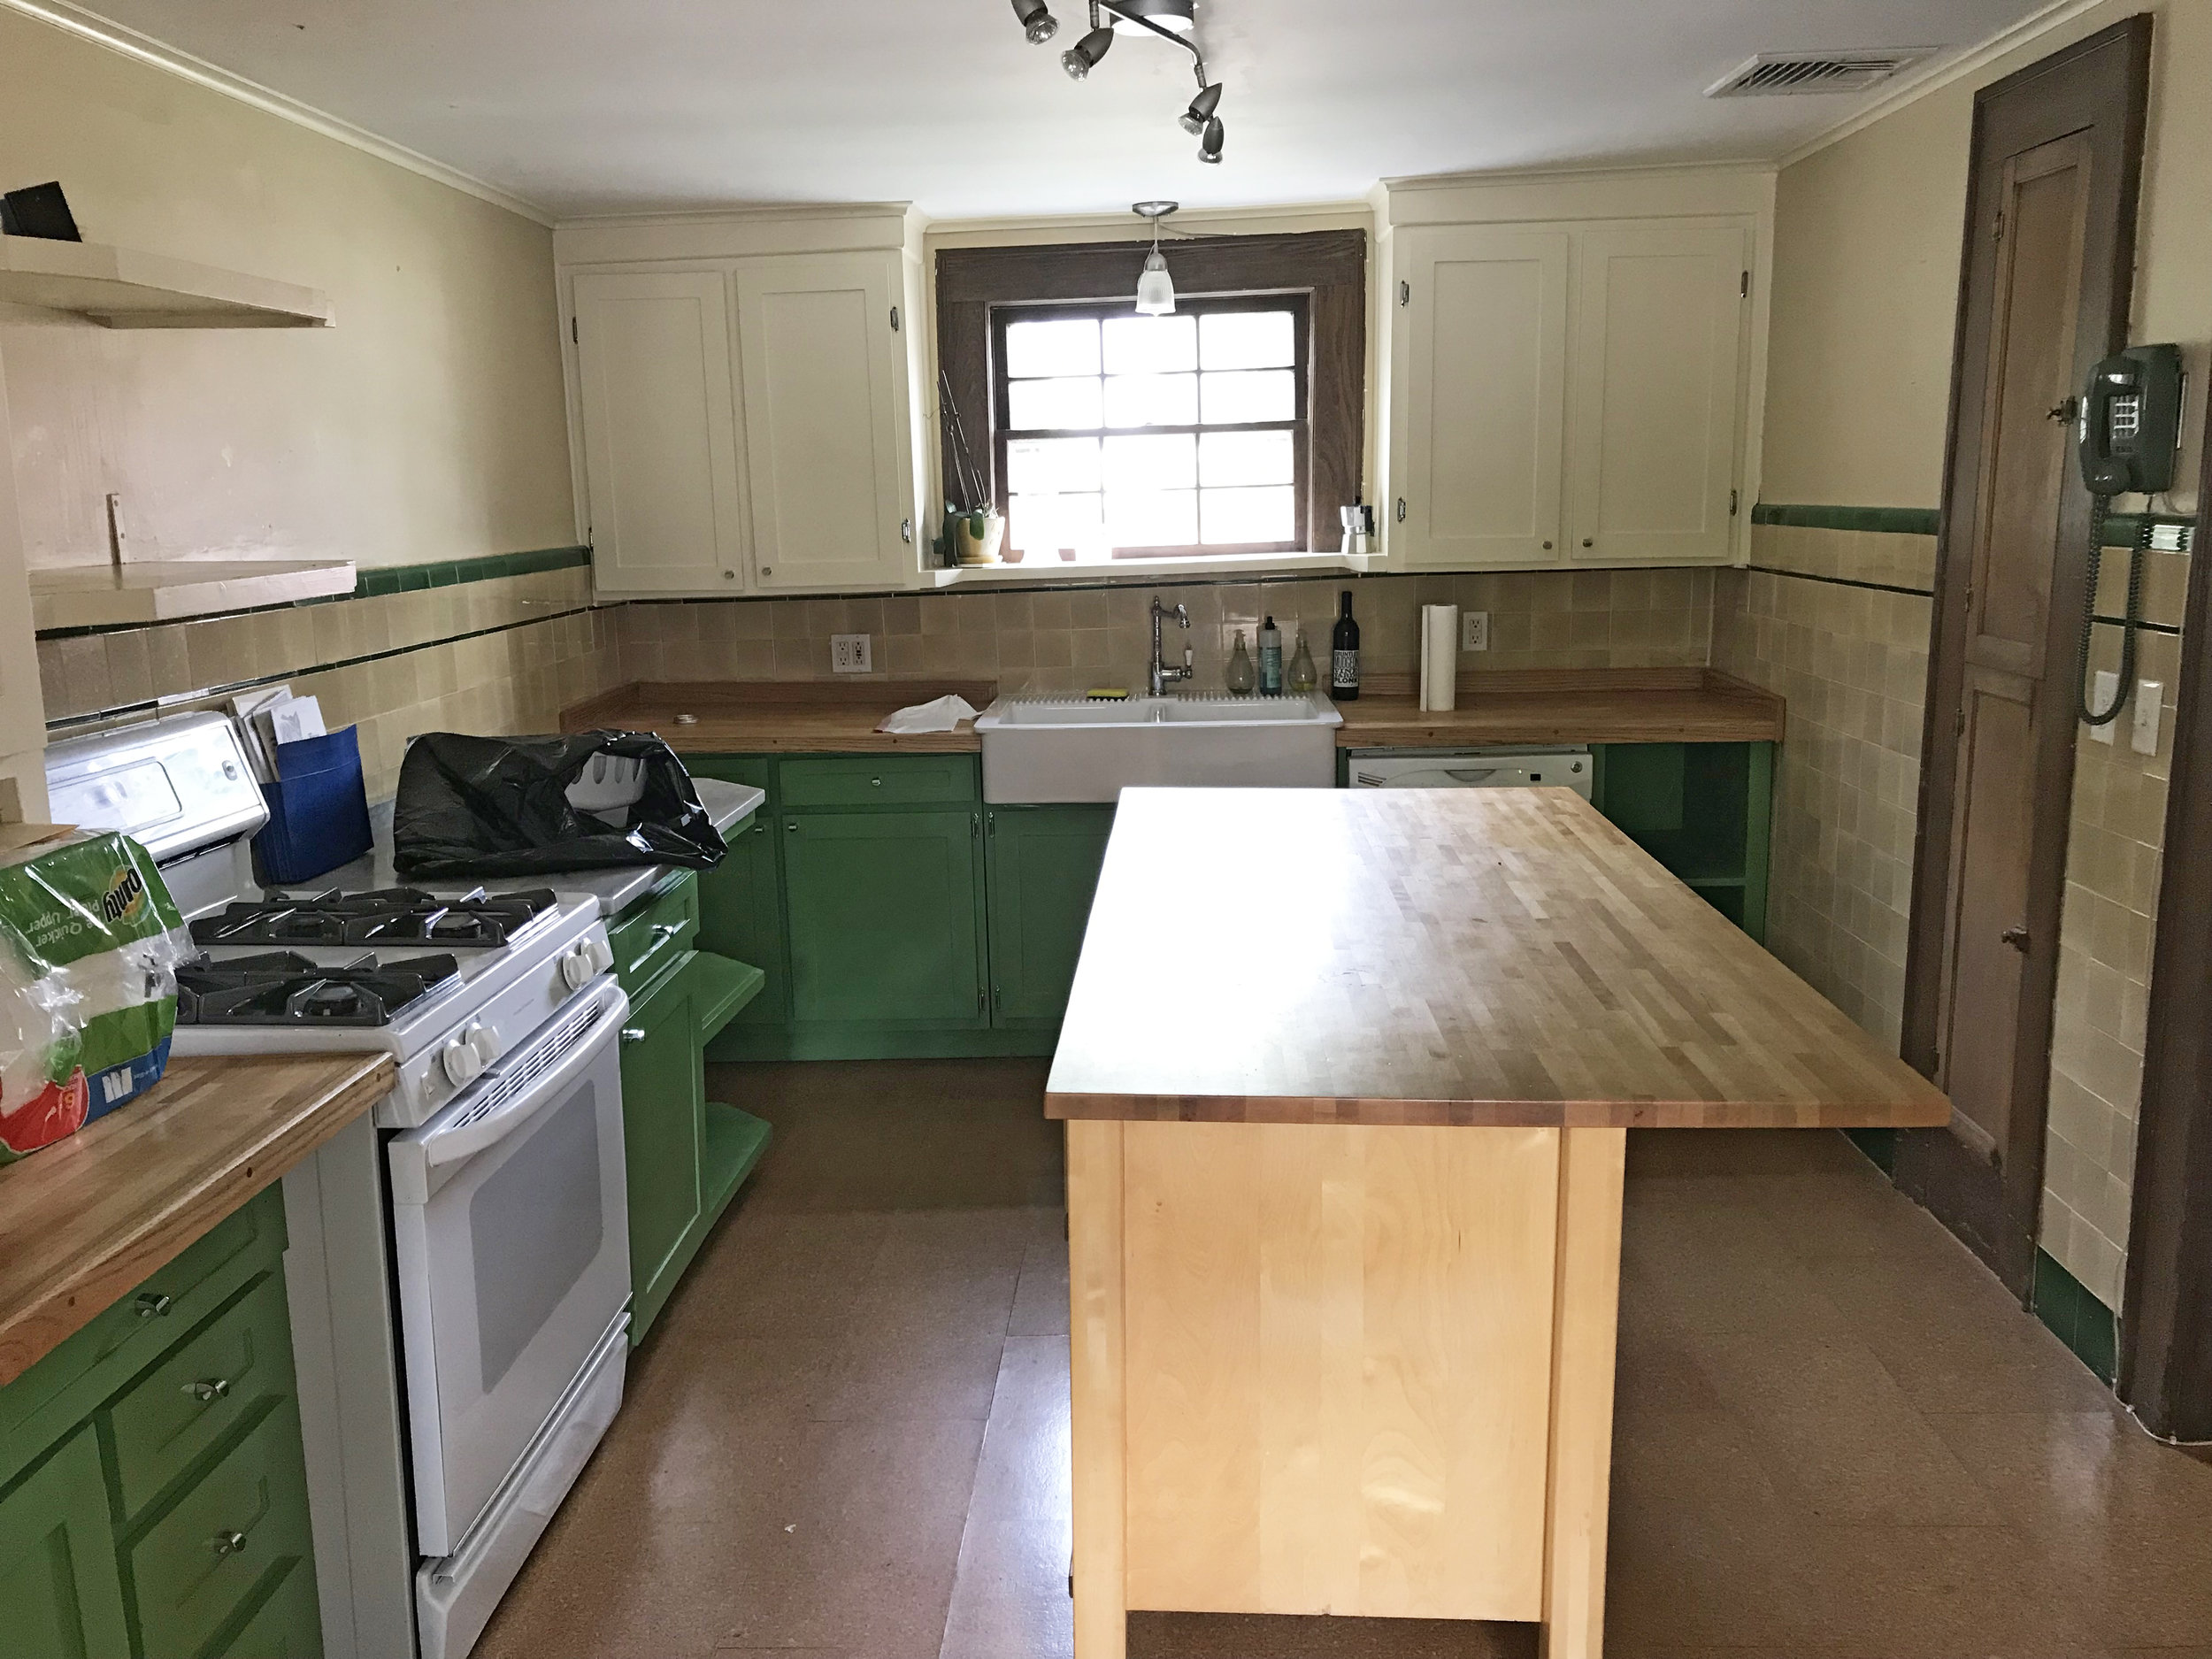 """This is getting a temporary facelift before a major overhaul. That angle you see on the back counter wall? That's really there,a 4"""" slope as the kitchen is falling off. Major. Renovation. Coming."""